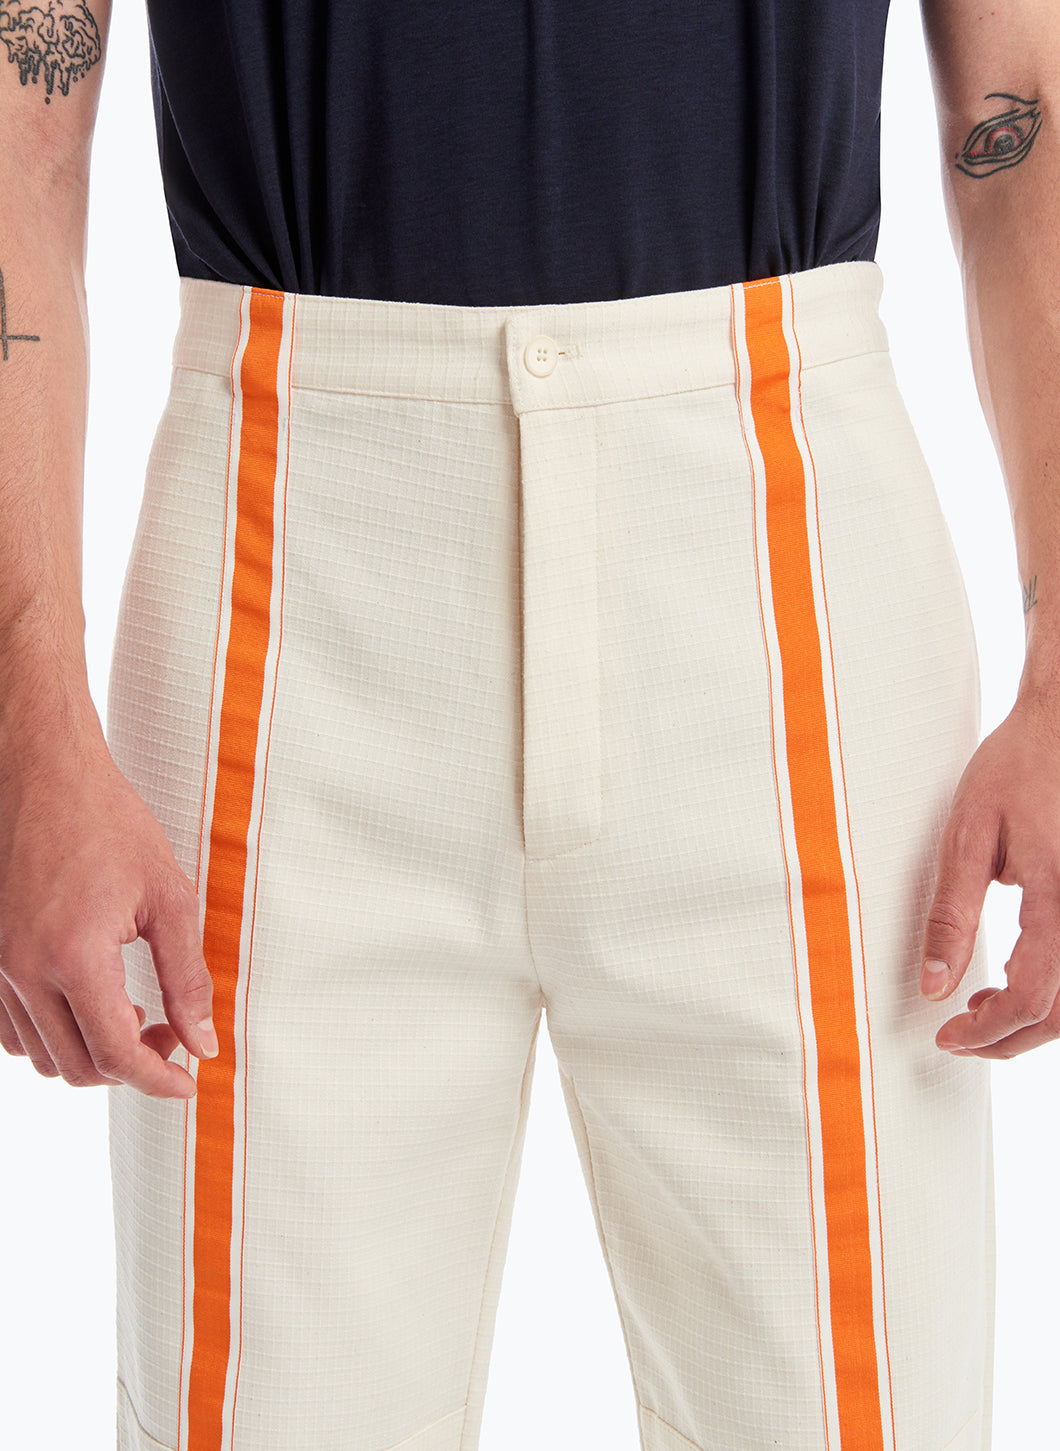 Pants with Vertical Bands in White Cotton Ripstop with Orange Satin Trim